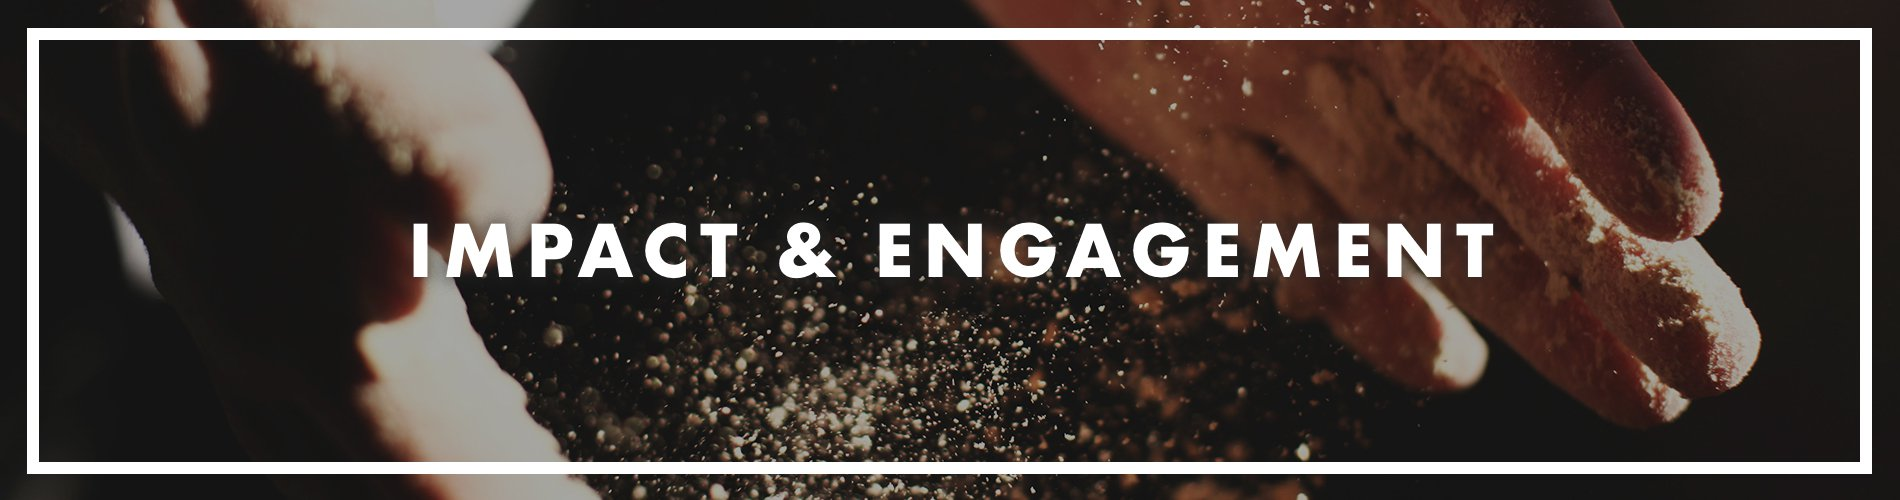 Impact and Engagement banner